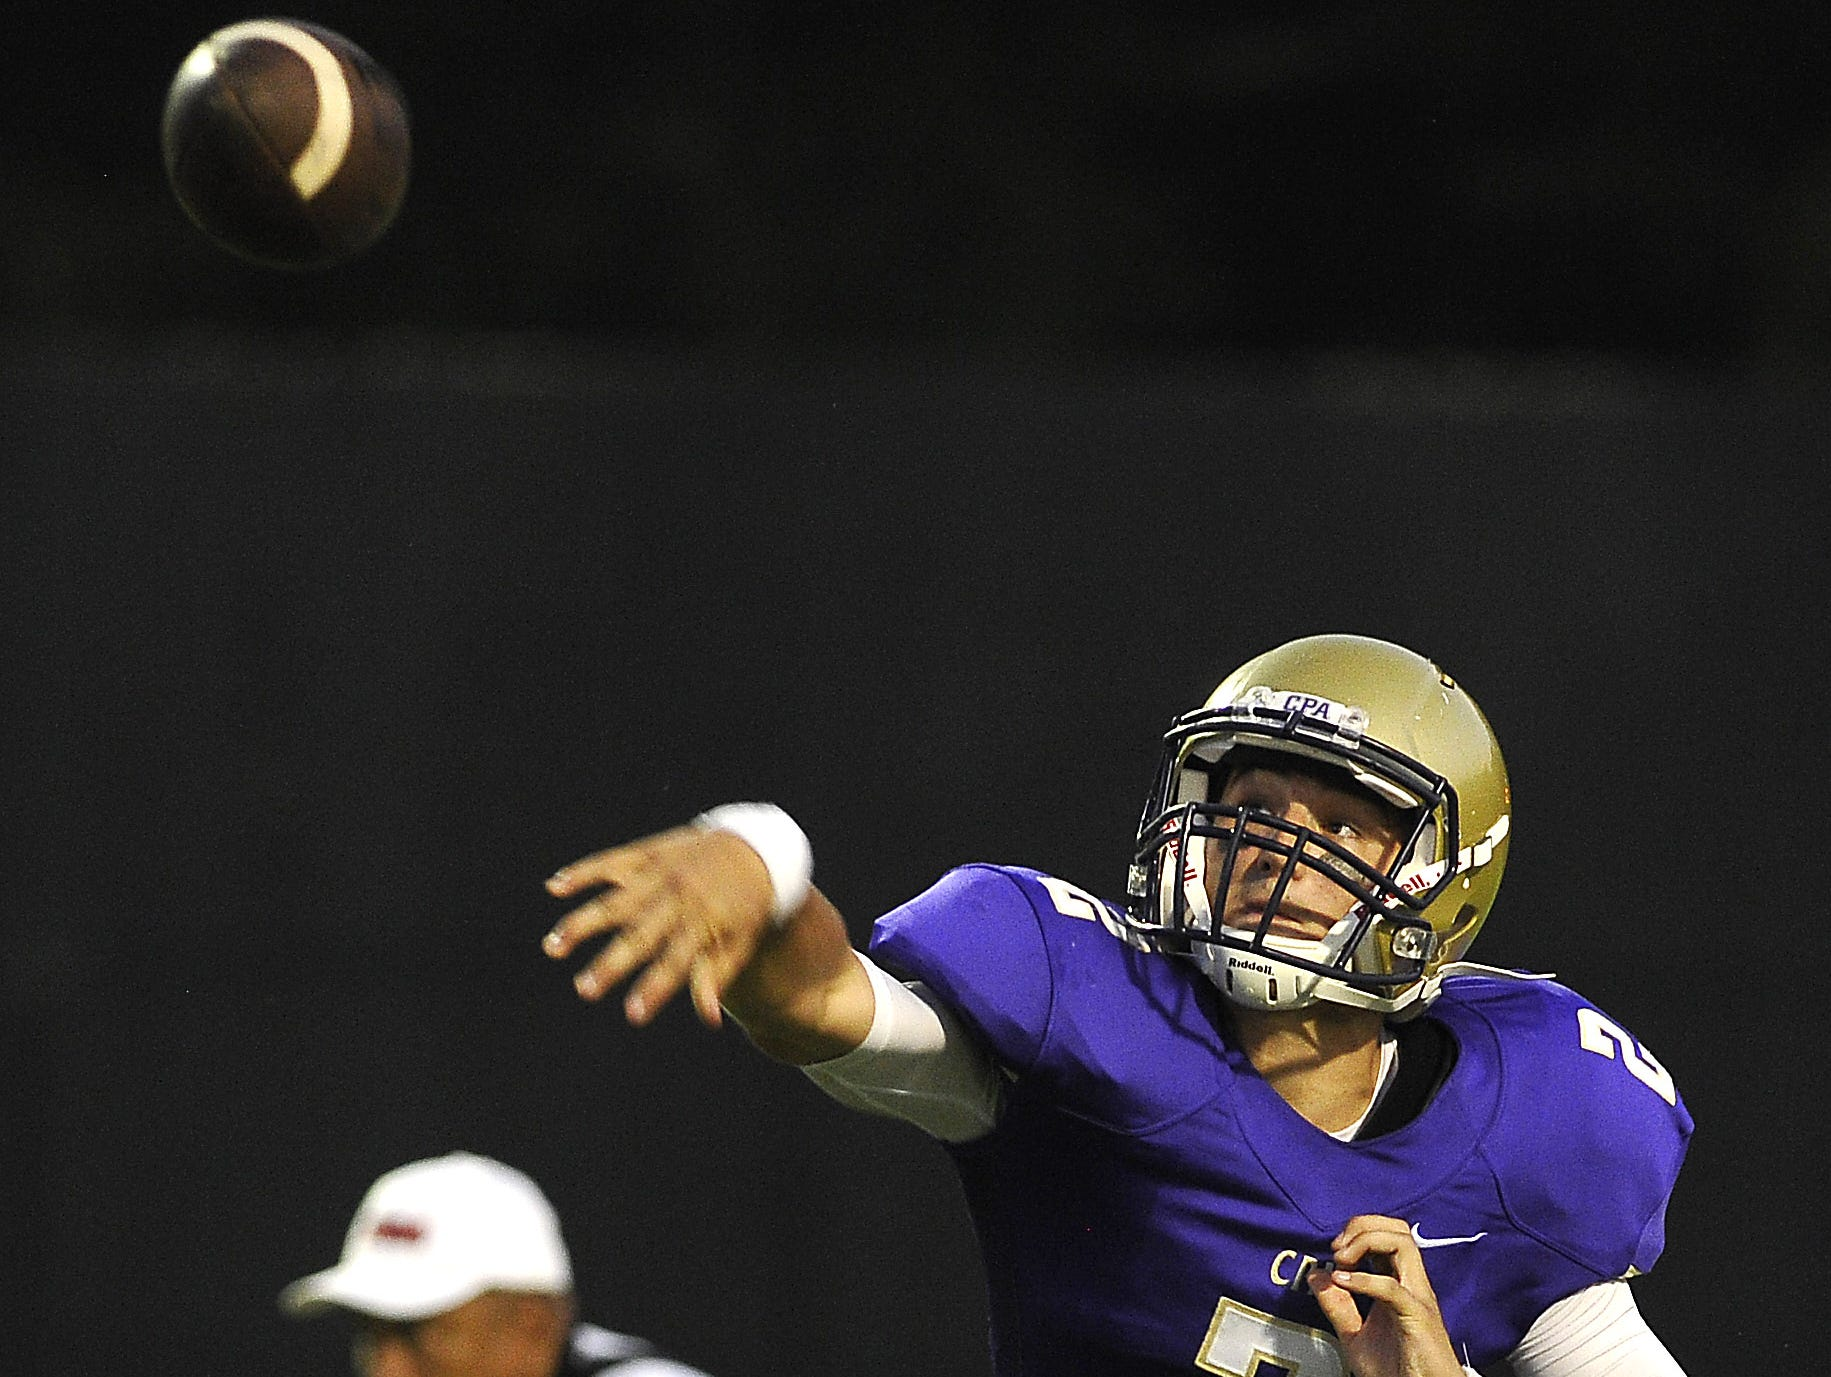 CPA quarterback Zack Weatherly will hope to lead the Lions to their second straight Class 3A state title.